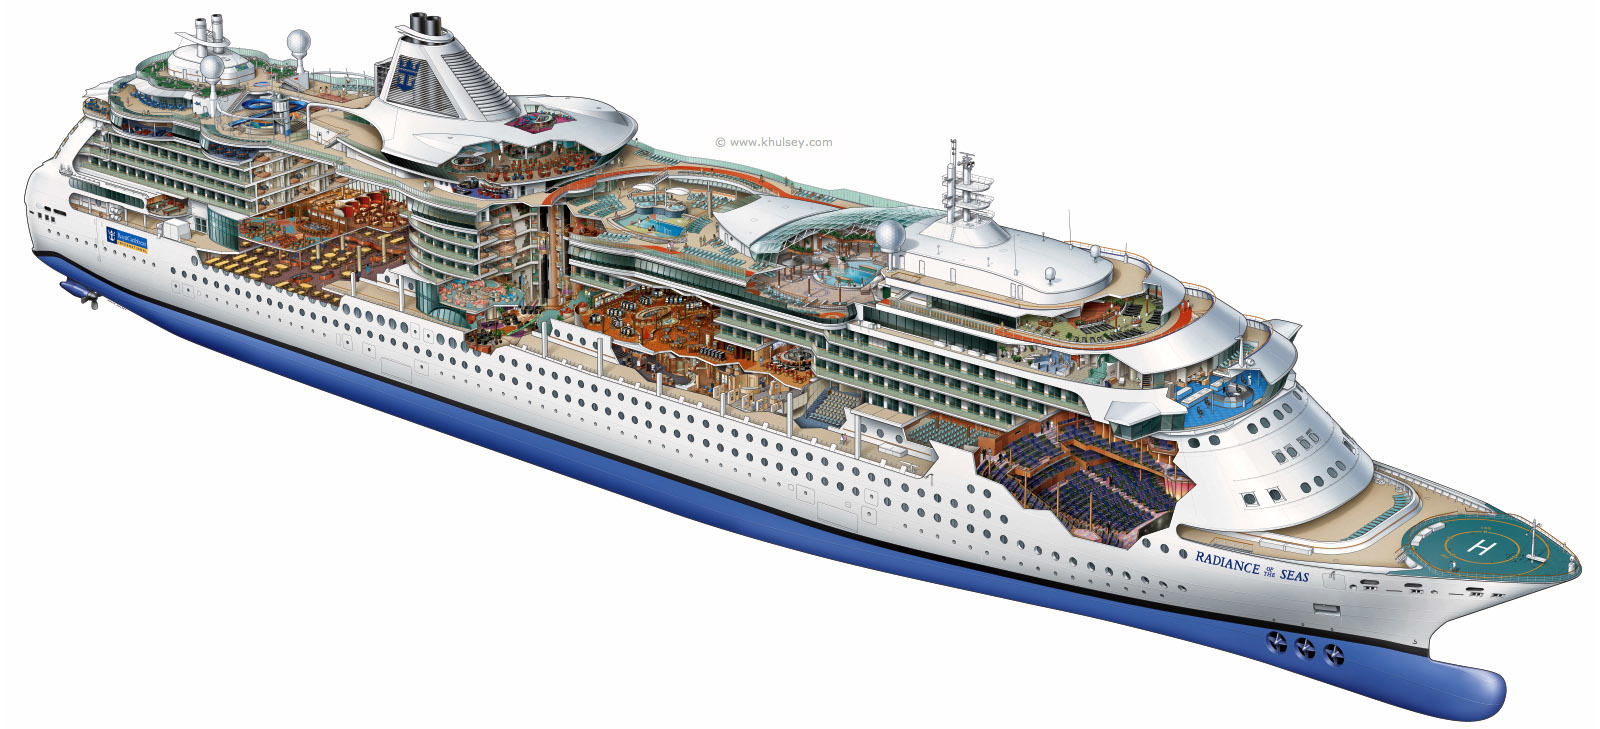 ships diagram cutaway cruise HD Wallpaper